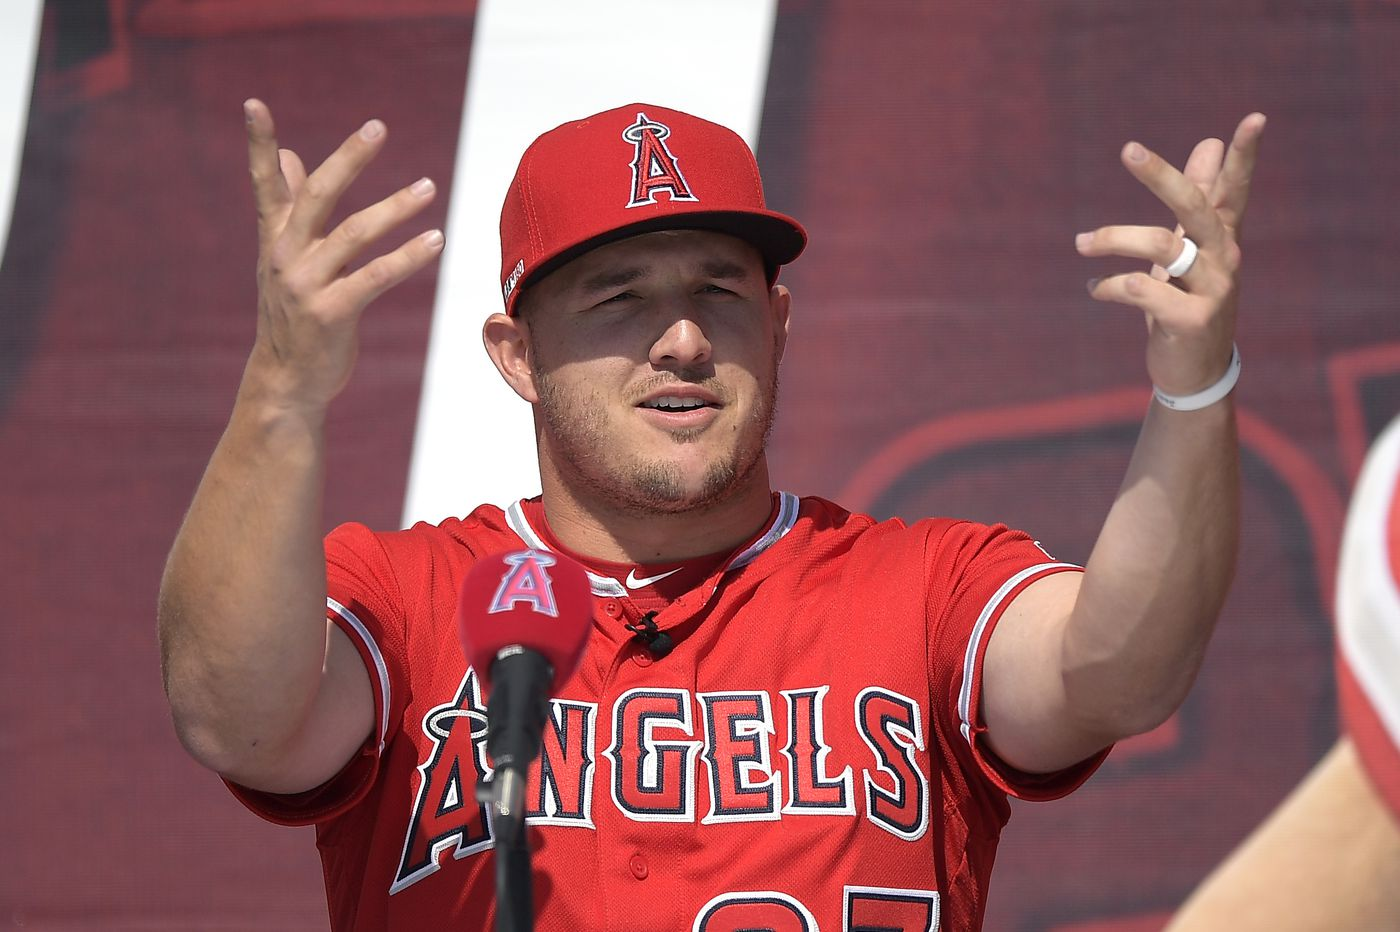 Mike Trout on leaving Angels: 'It never crossed my mind'